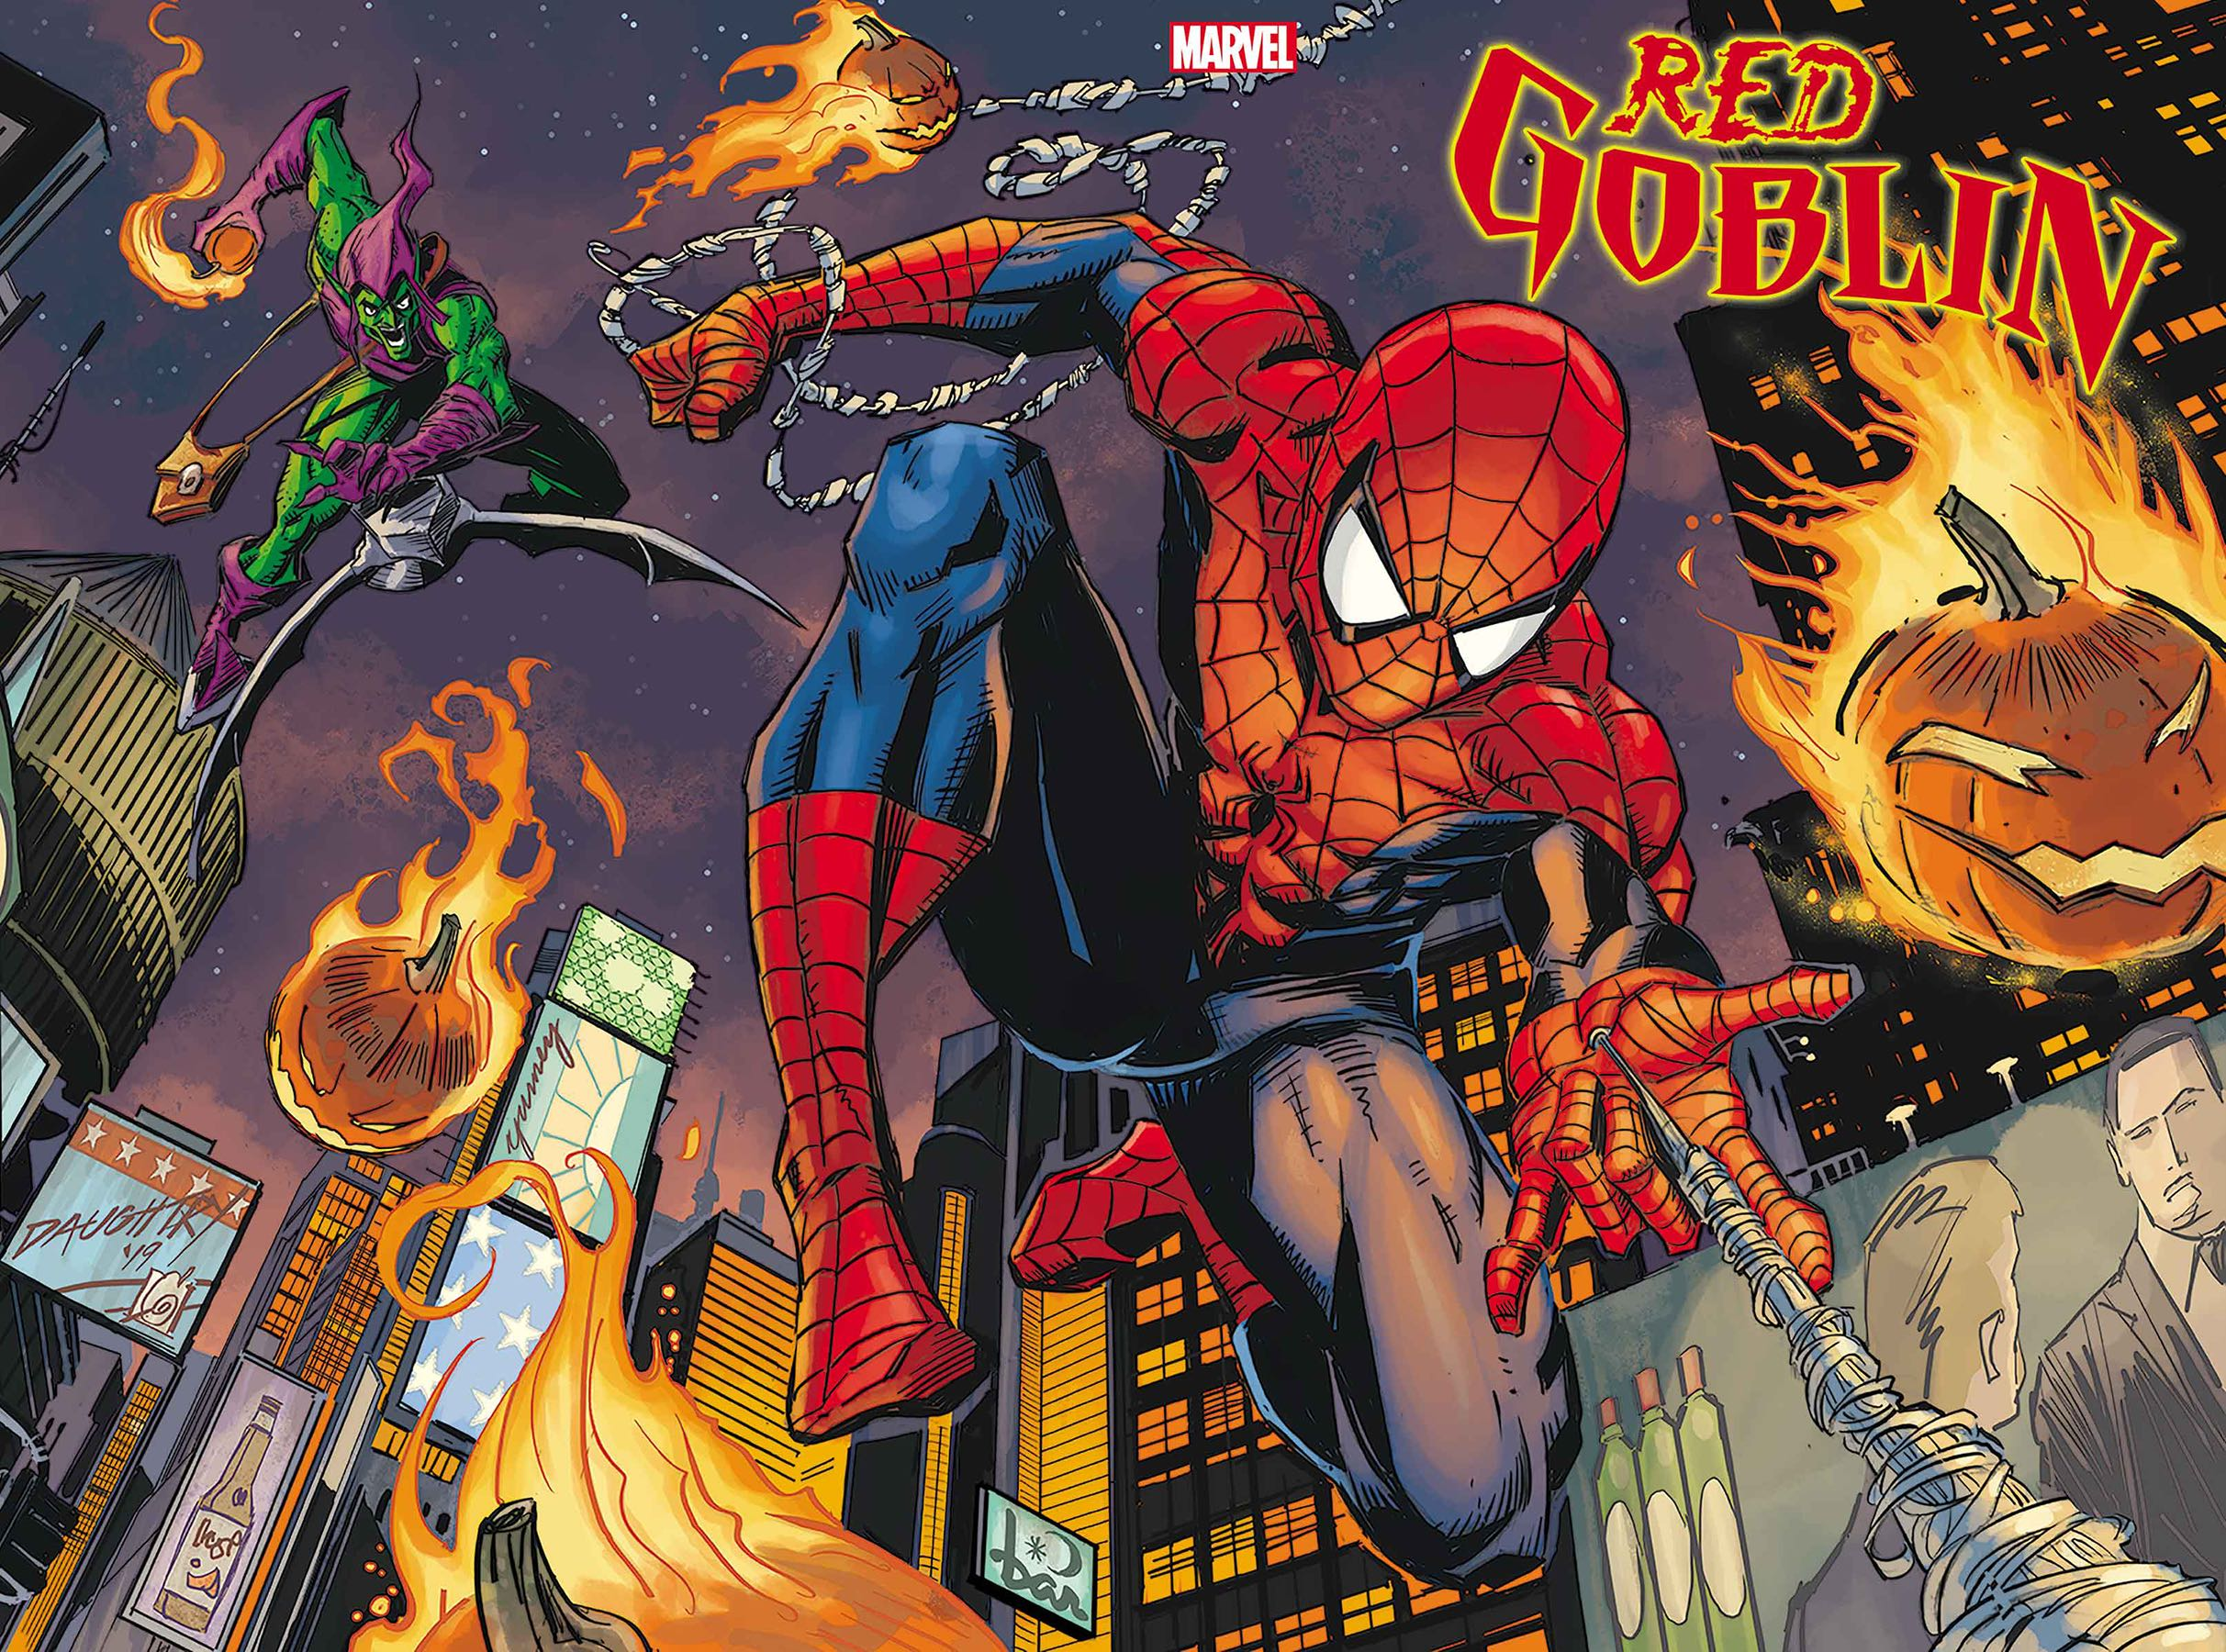 Red Goblin: Red Death #1 Review